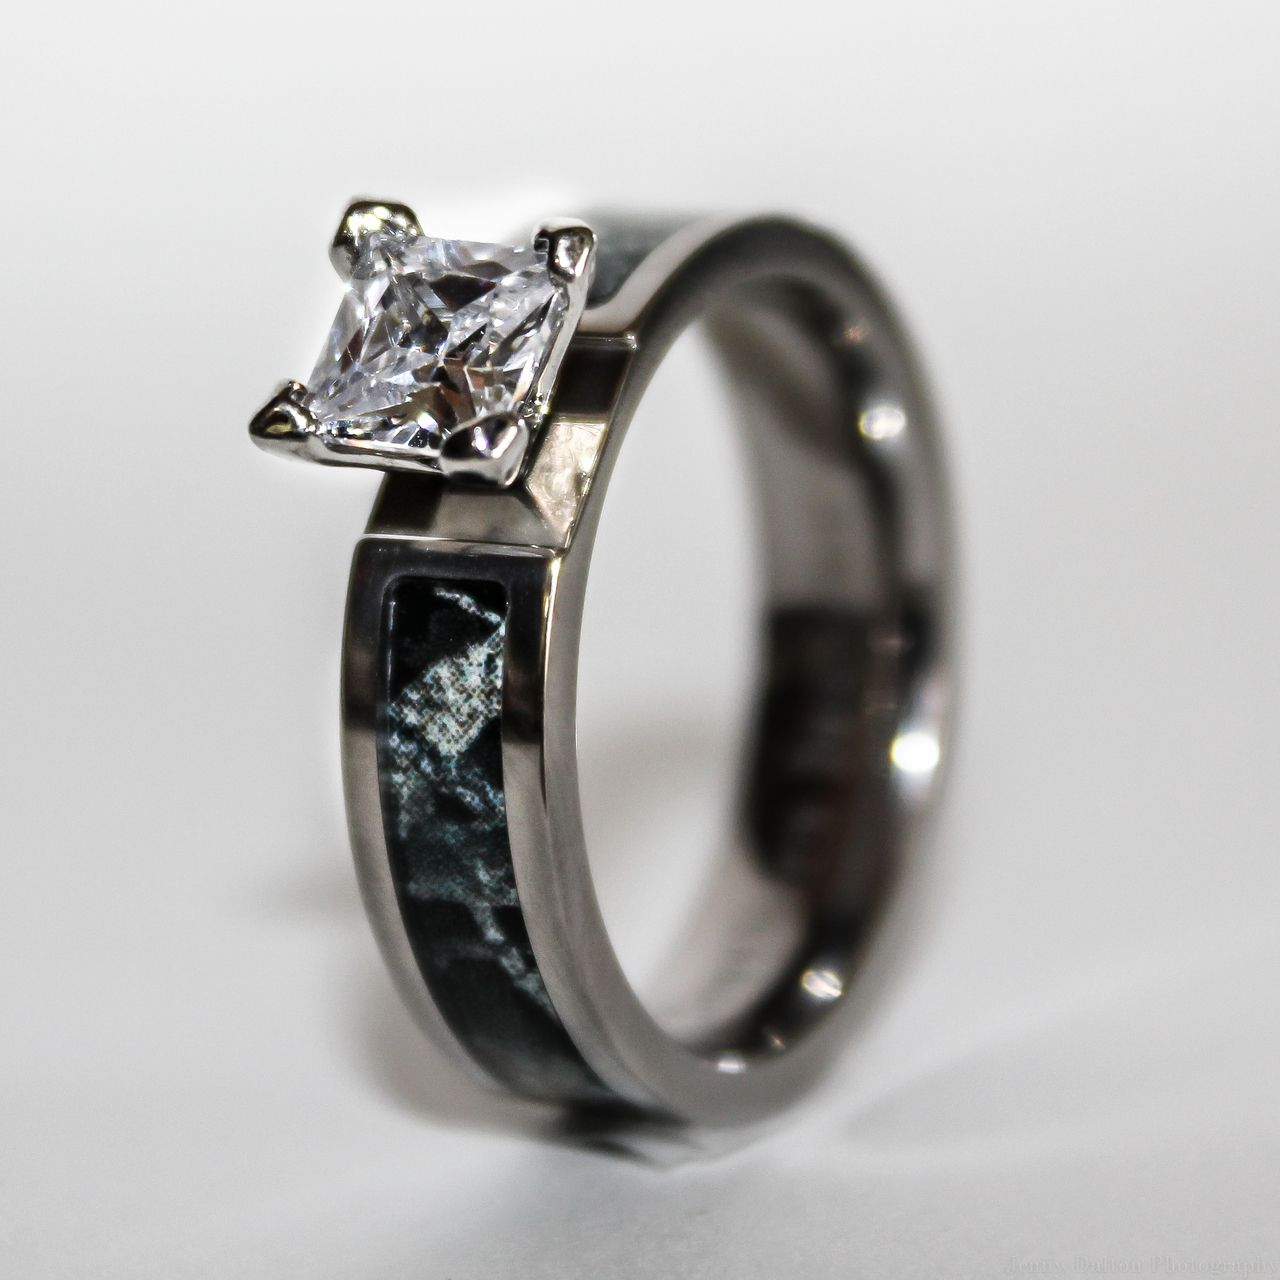 camo wedding rings Black Camo Wedding Engagement Ring Titanium with CZ Stone